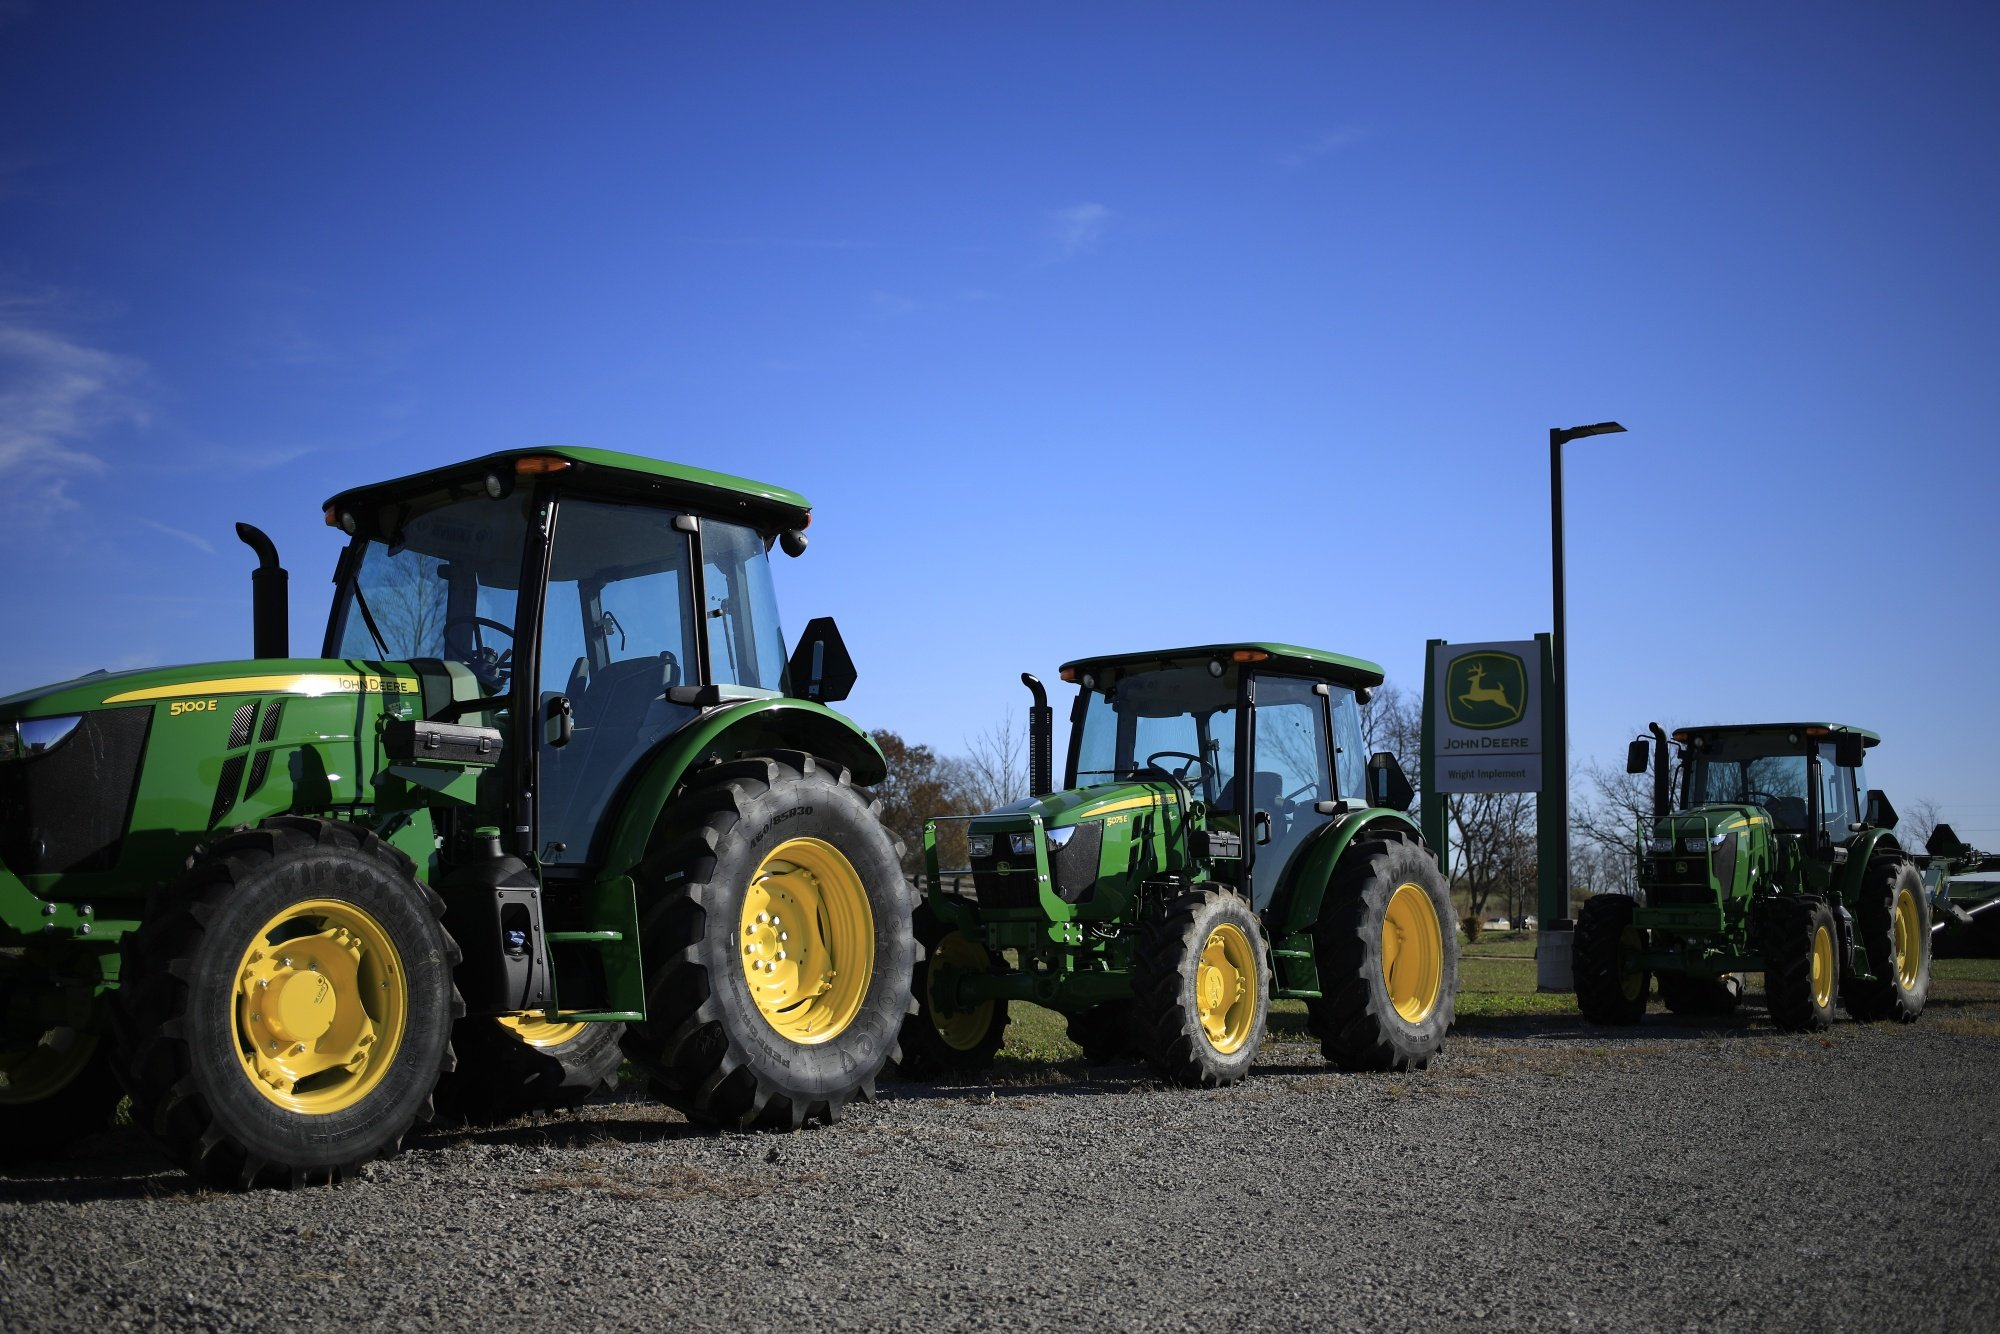 Deere & Co. tractors for sale at a dealership in Shelbyville, Kentucky, in November.